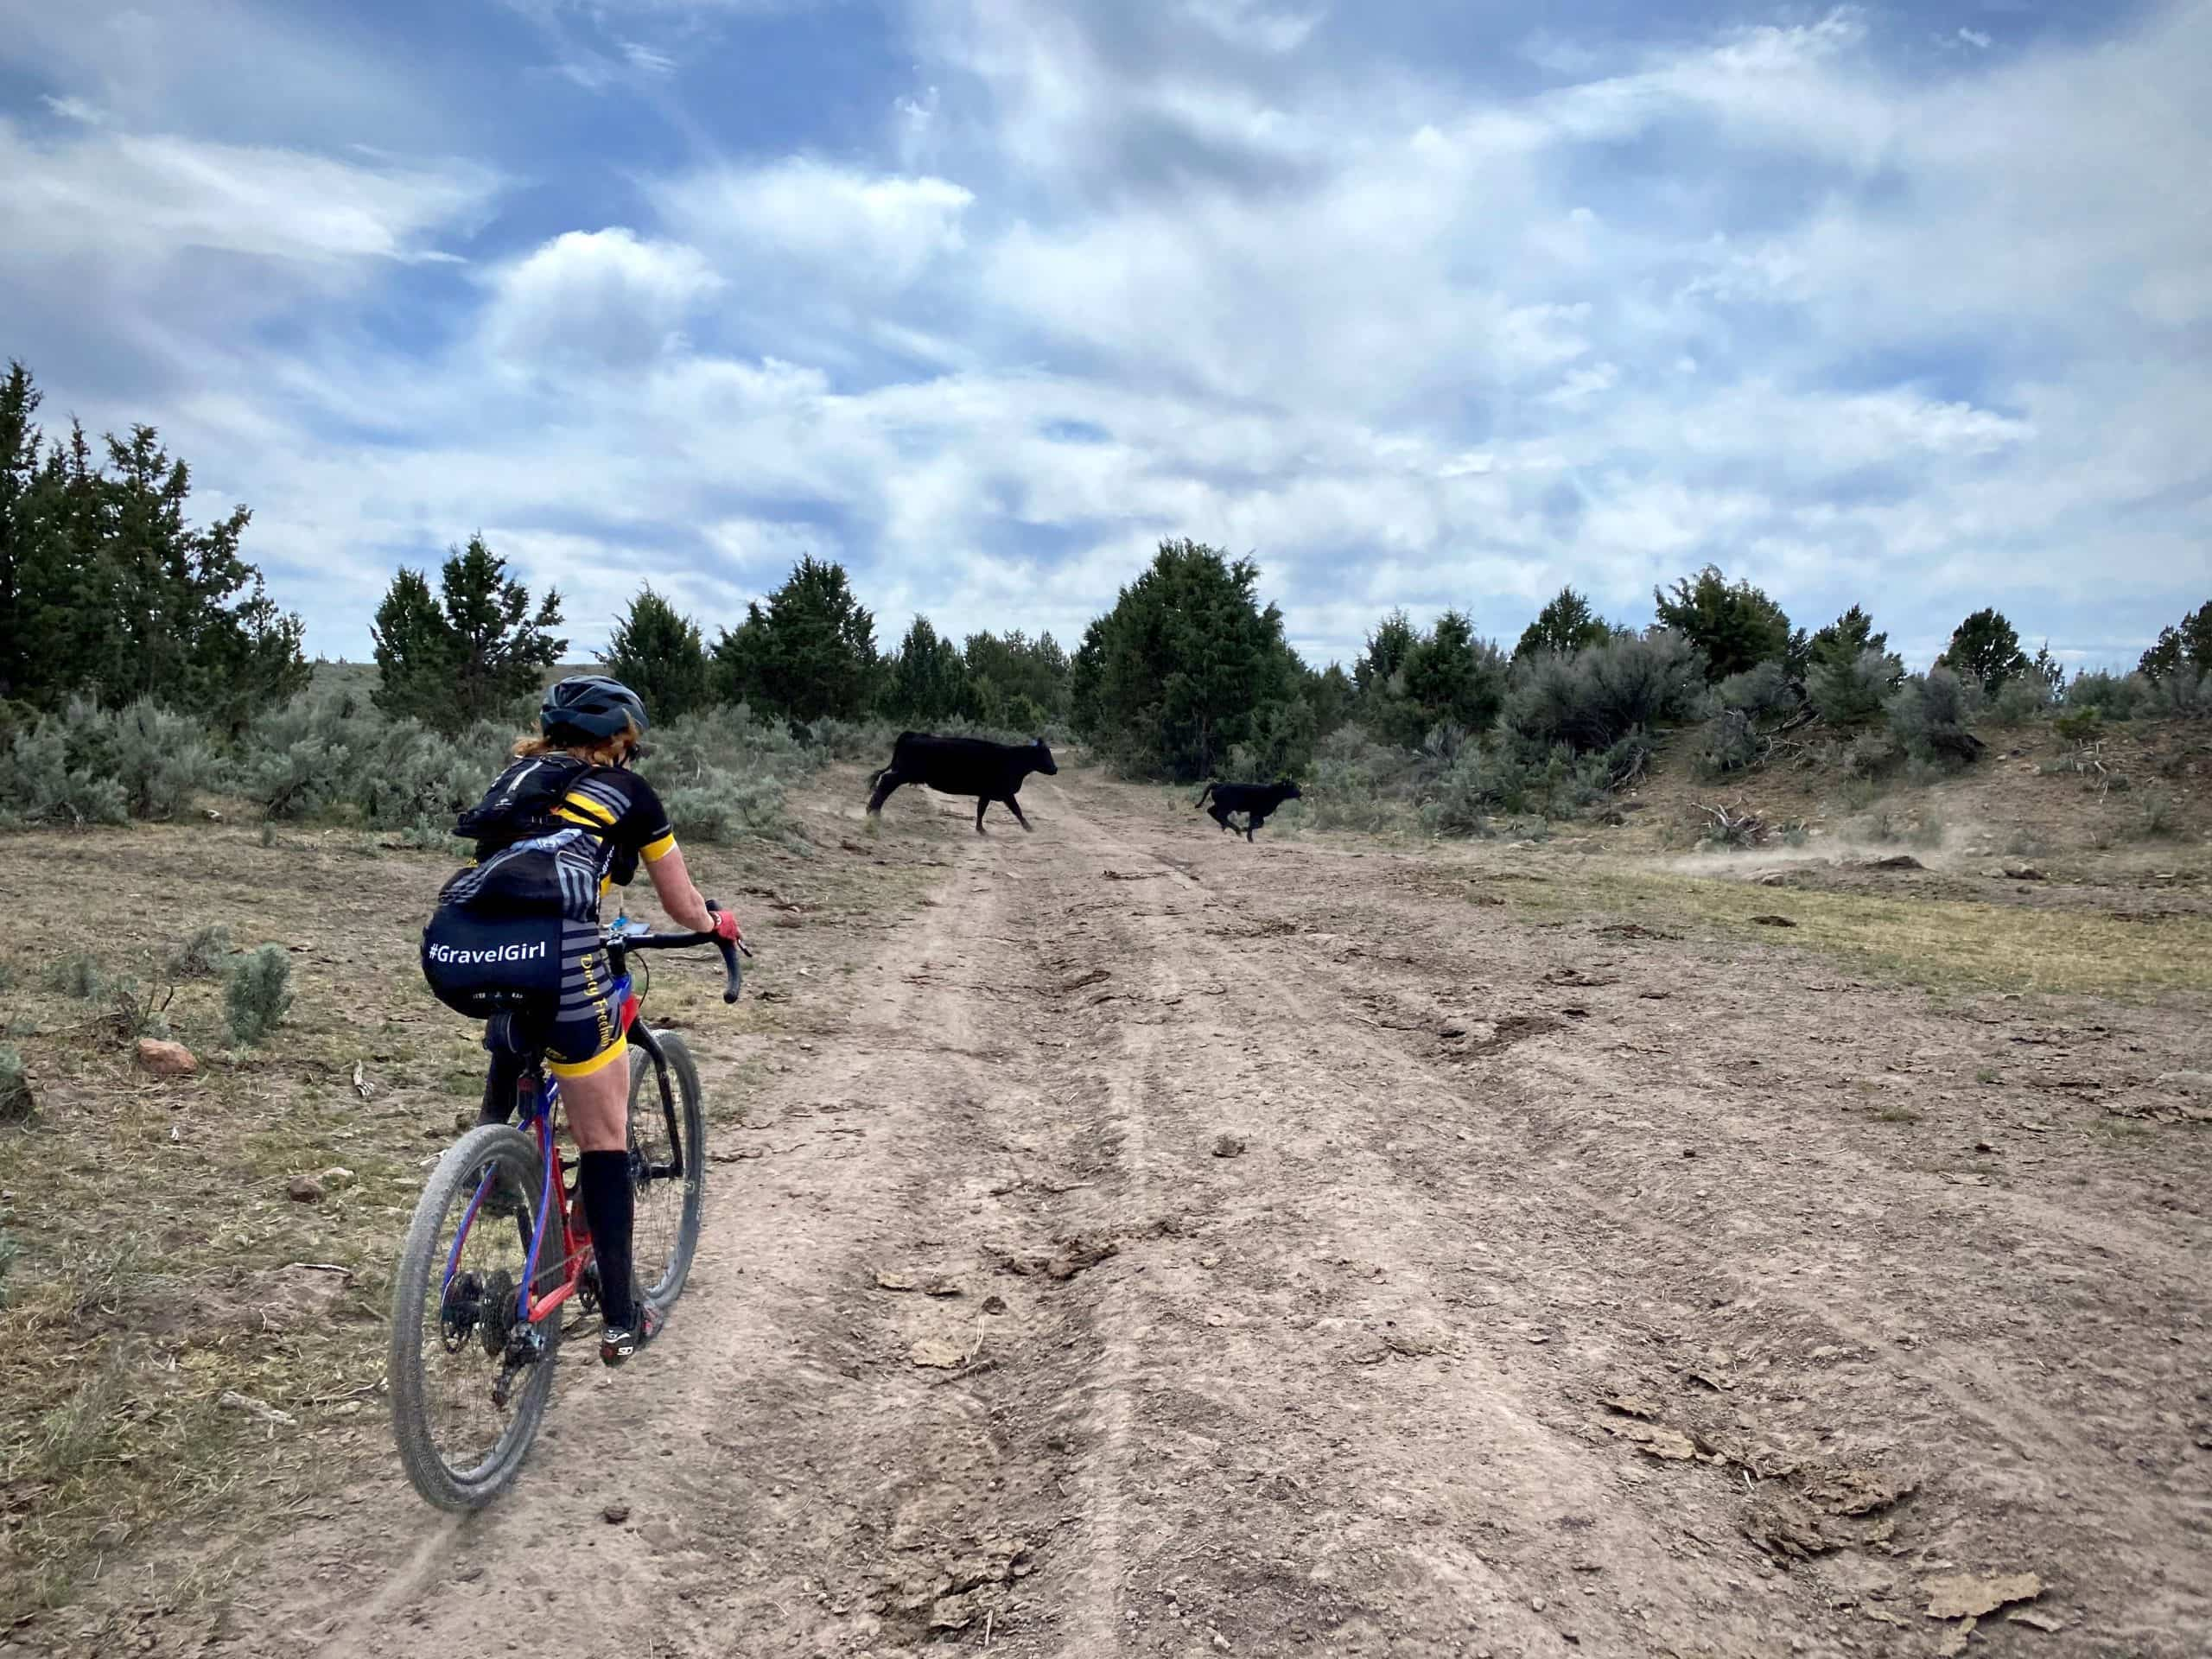 Gravel Girl riding dirt road with cows crossing in front of her.